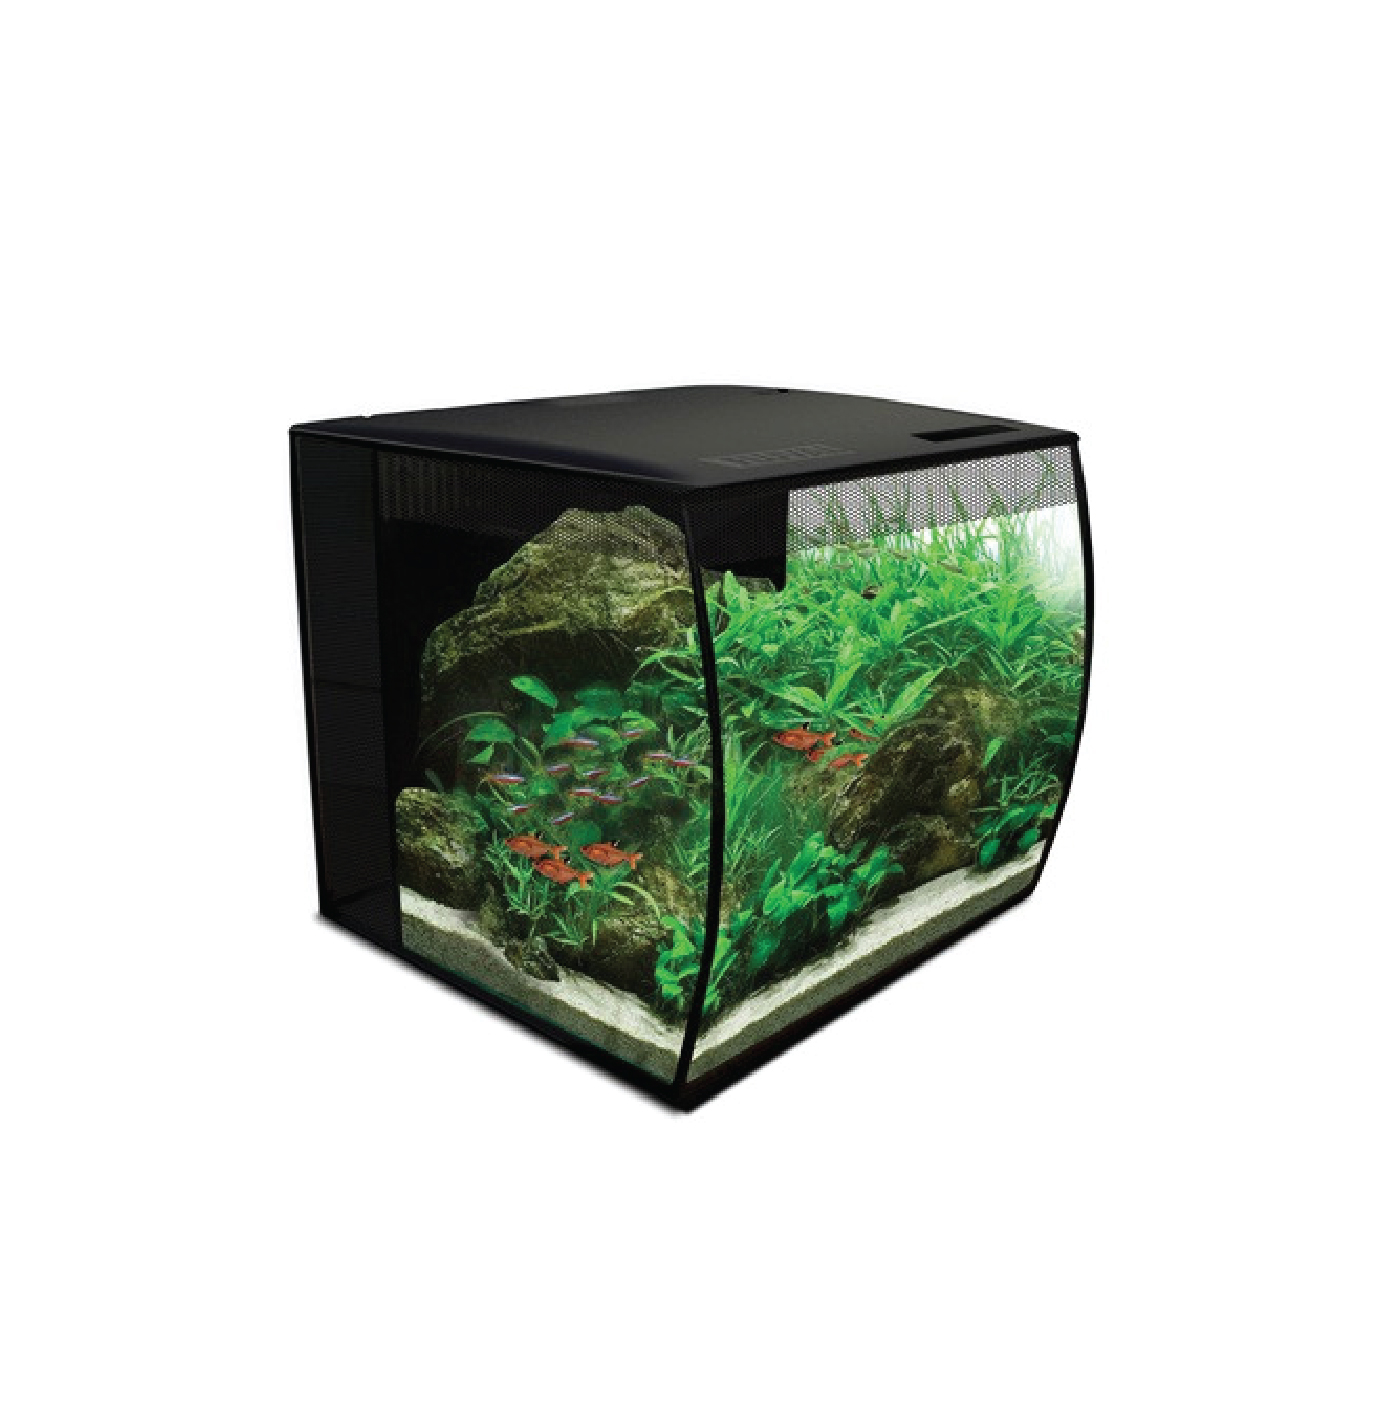 Aquariums/Tanks